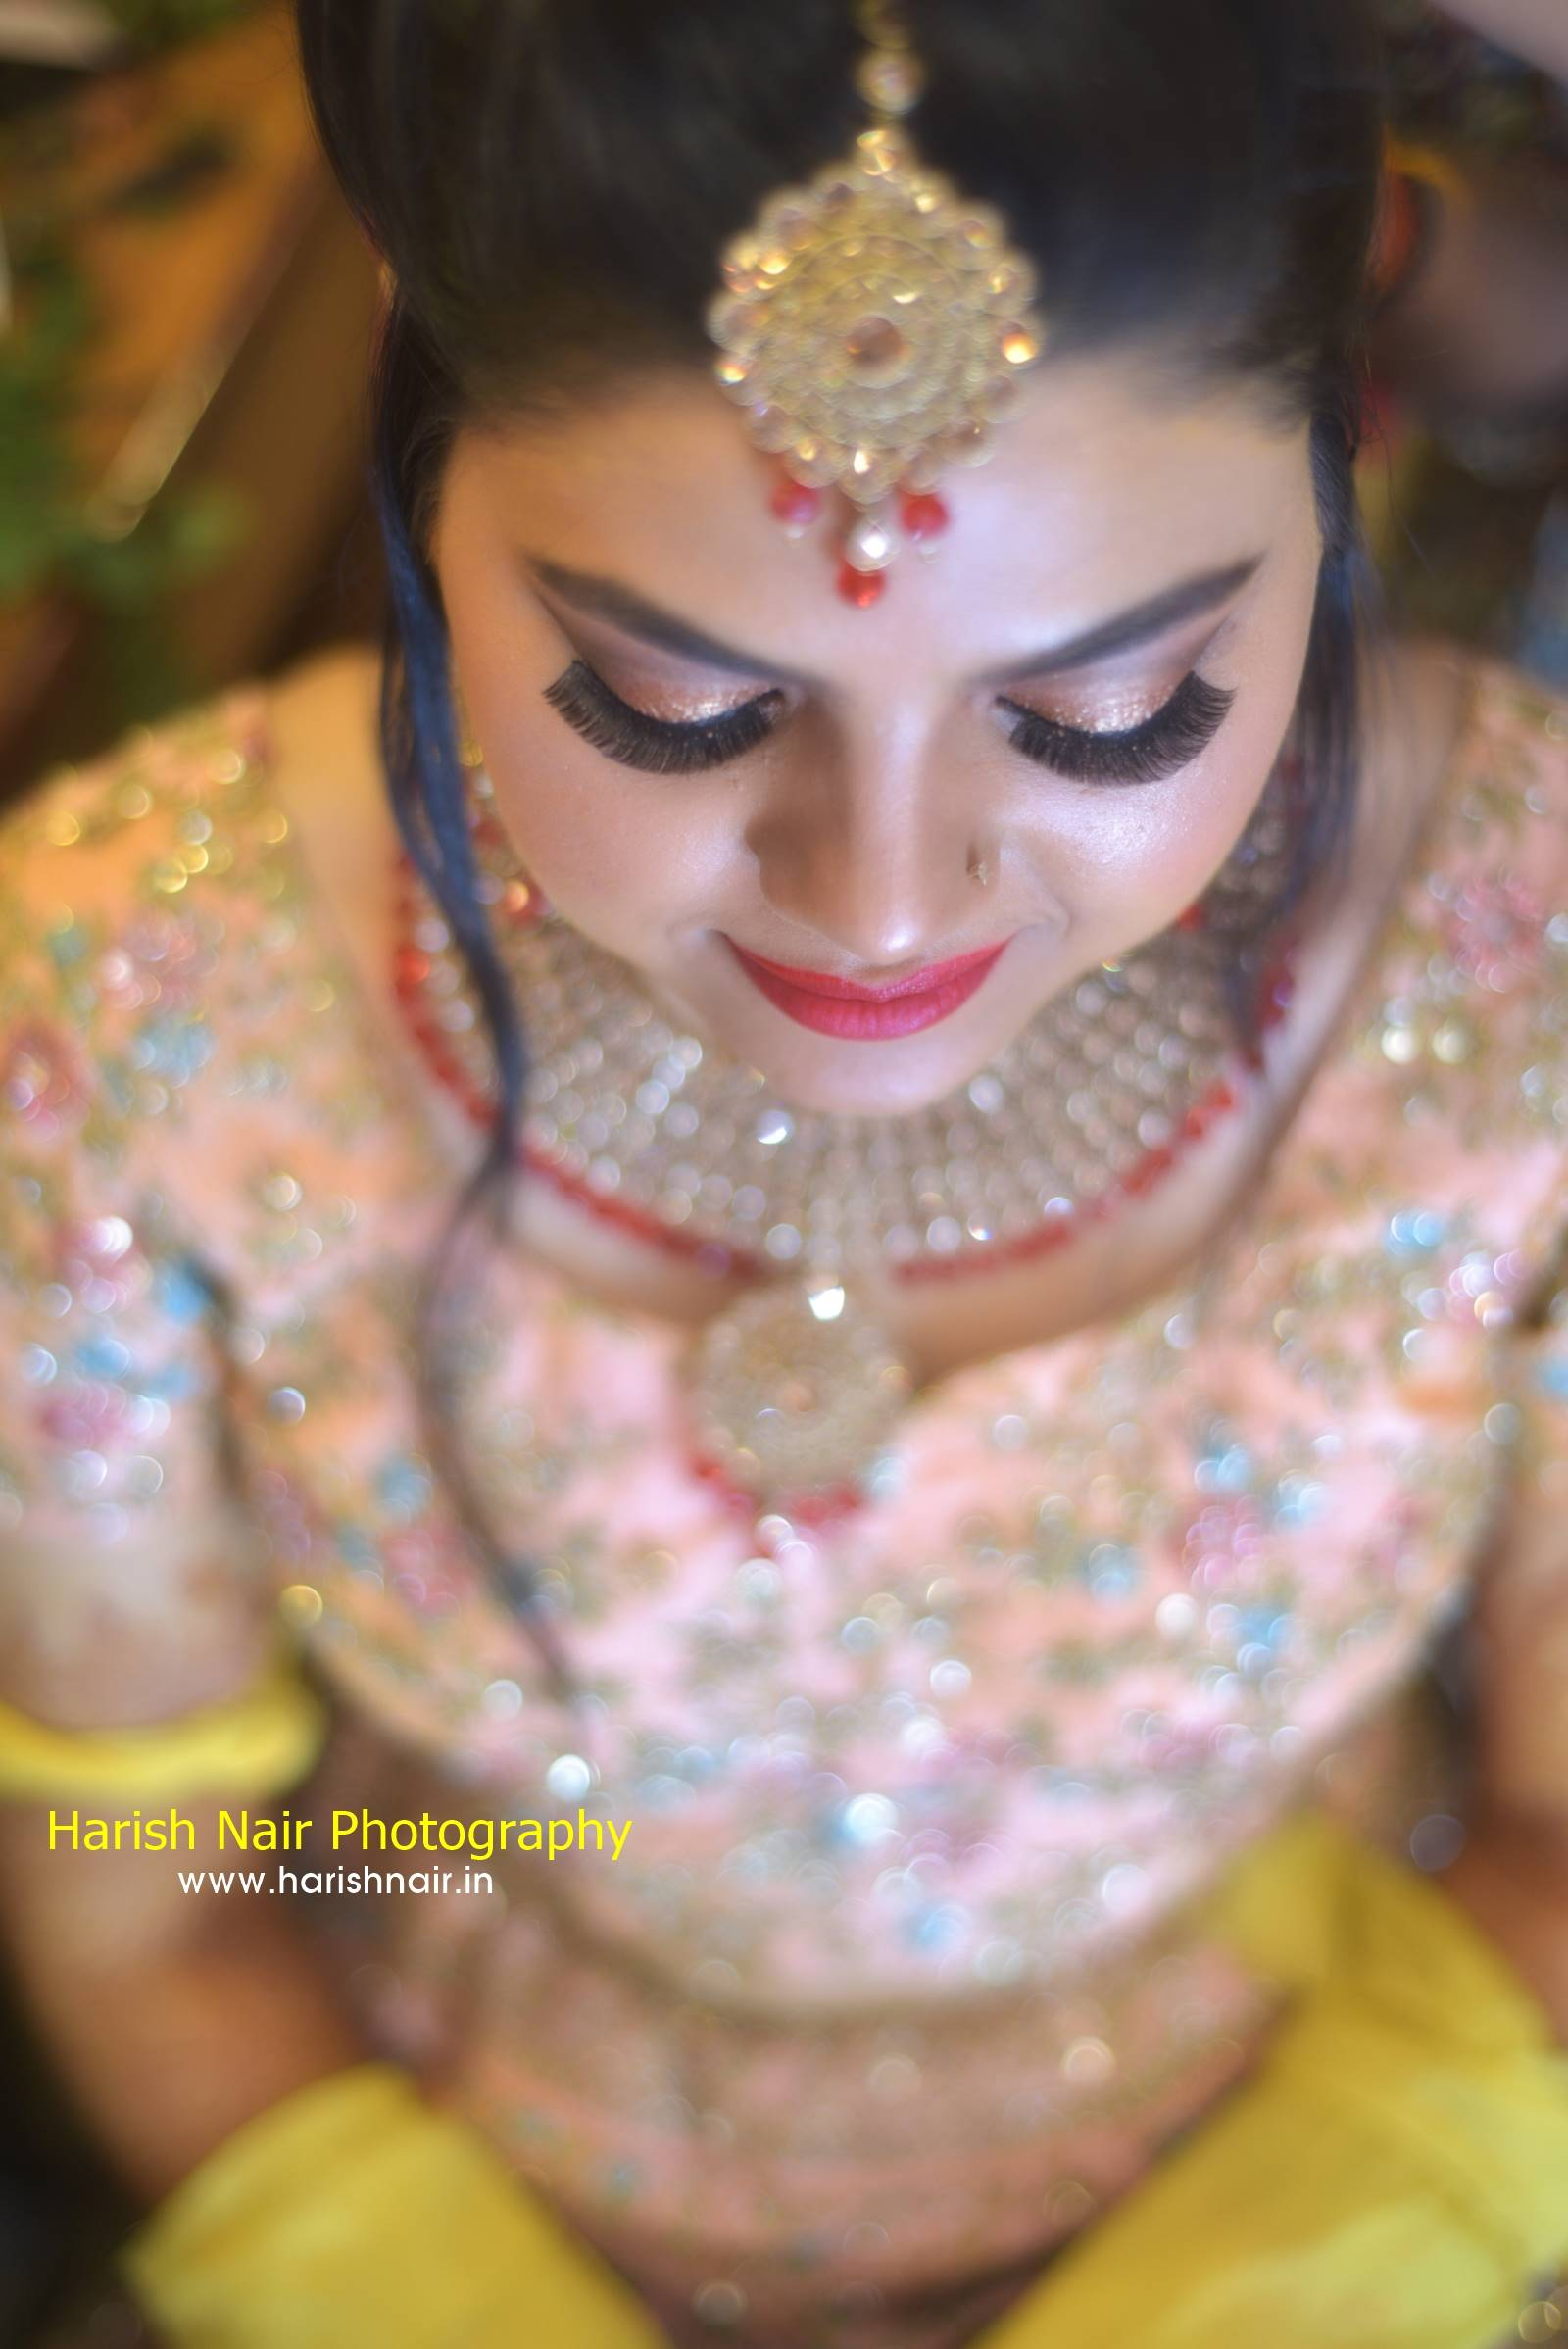 Wedding Photographer in Navi Mumbai Kalyan Dombivli